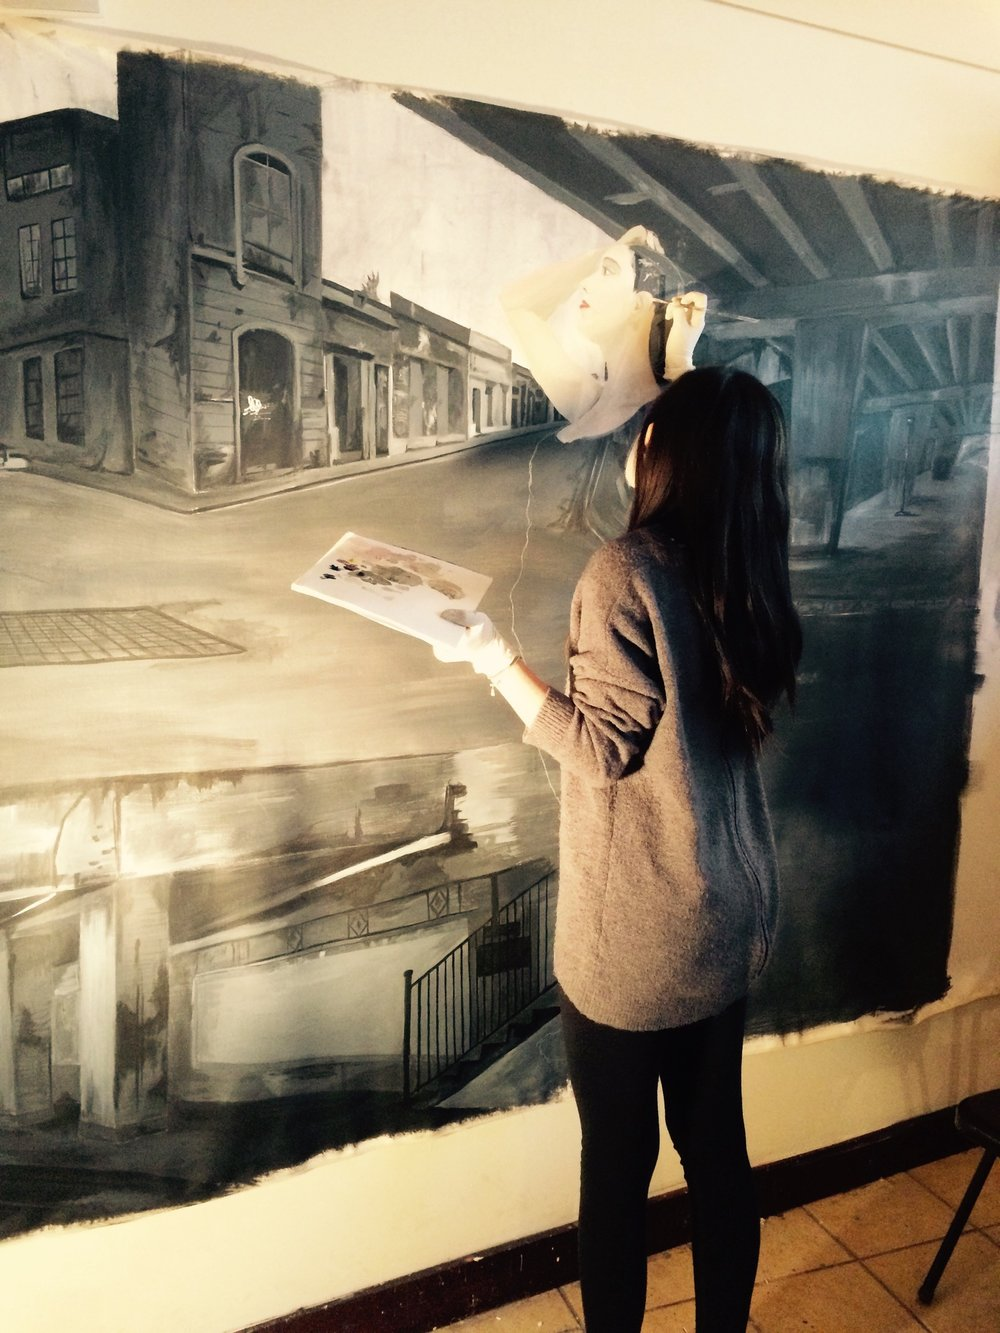 Student painting image of female over scene with buildings and overpass